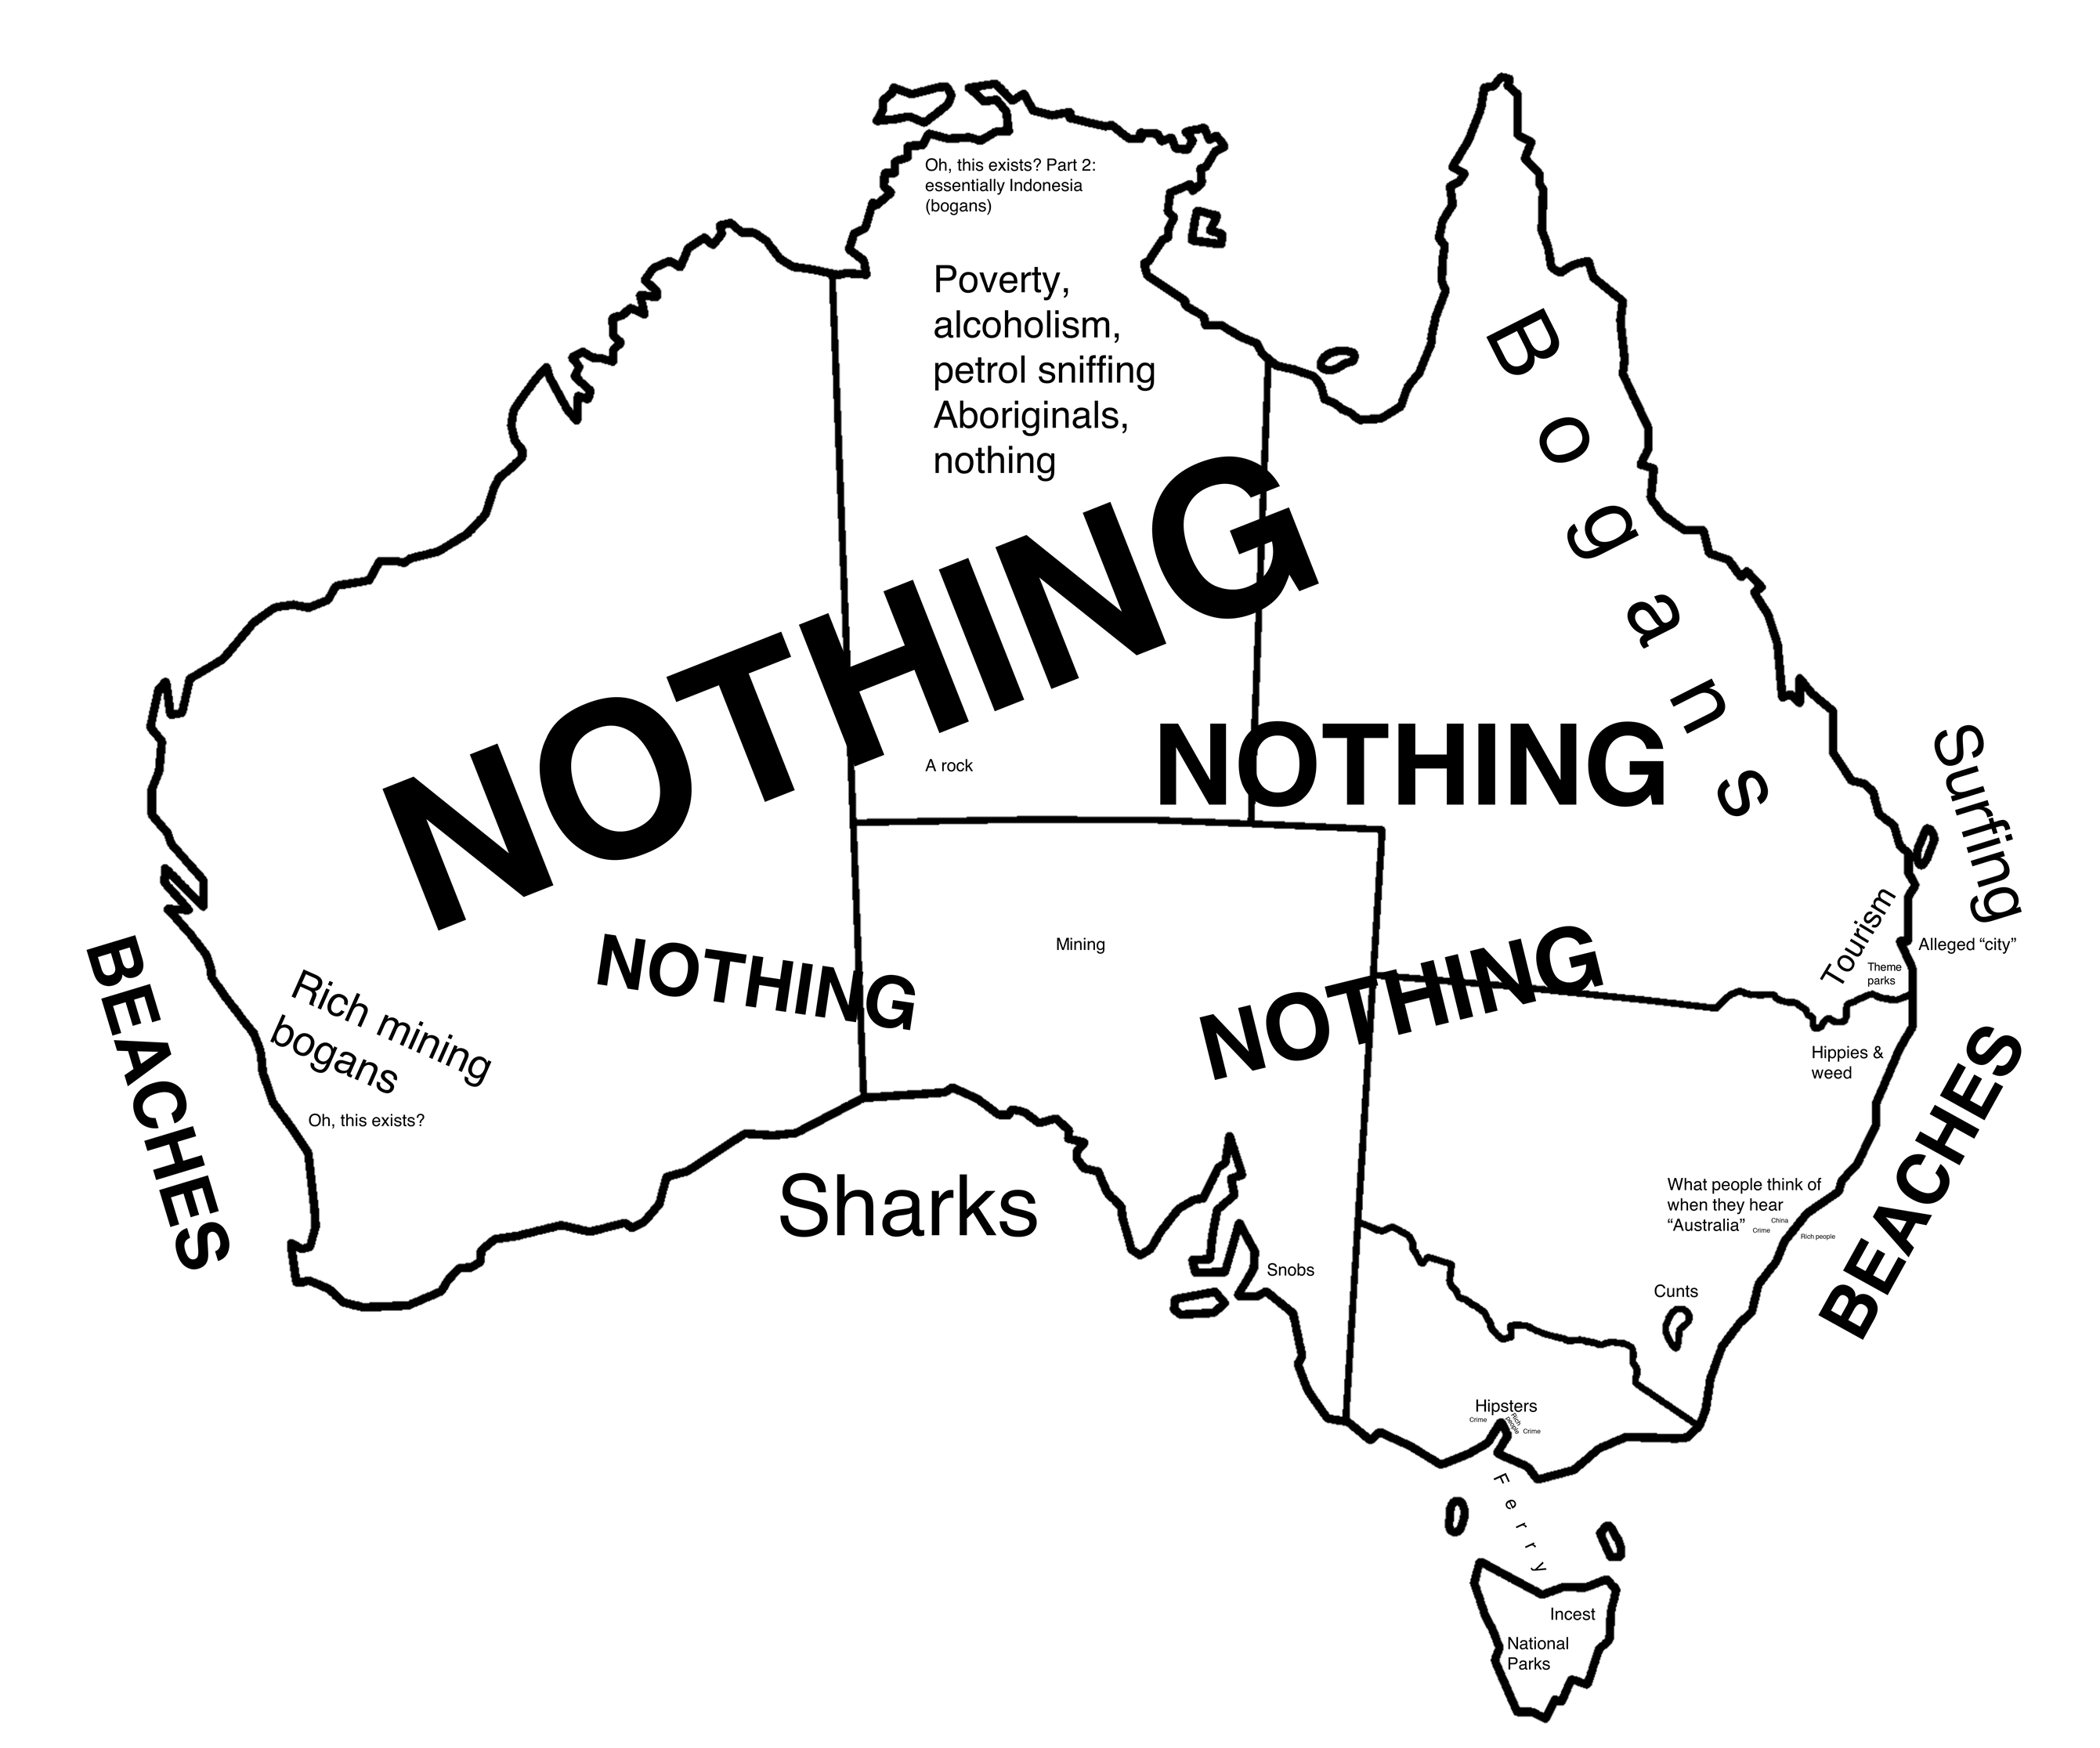 2681x2232 Stereotype Map Of Australia [Oc] [2681 X 2232] Mapporn